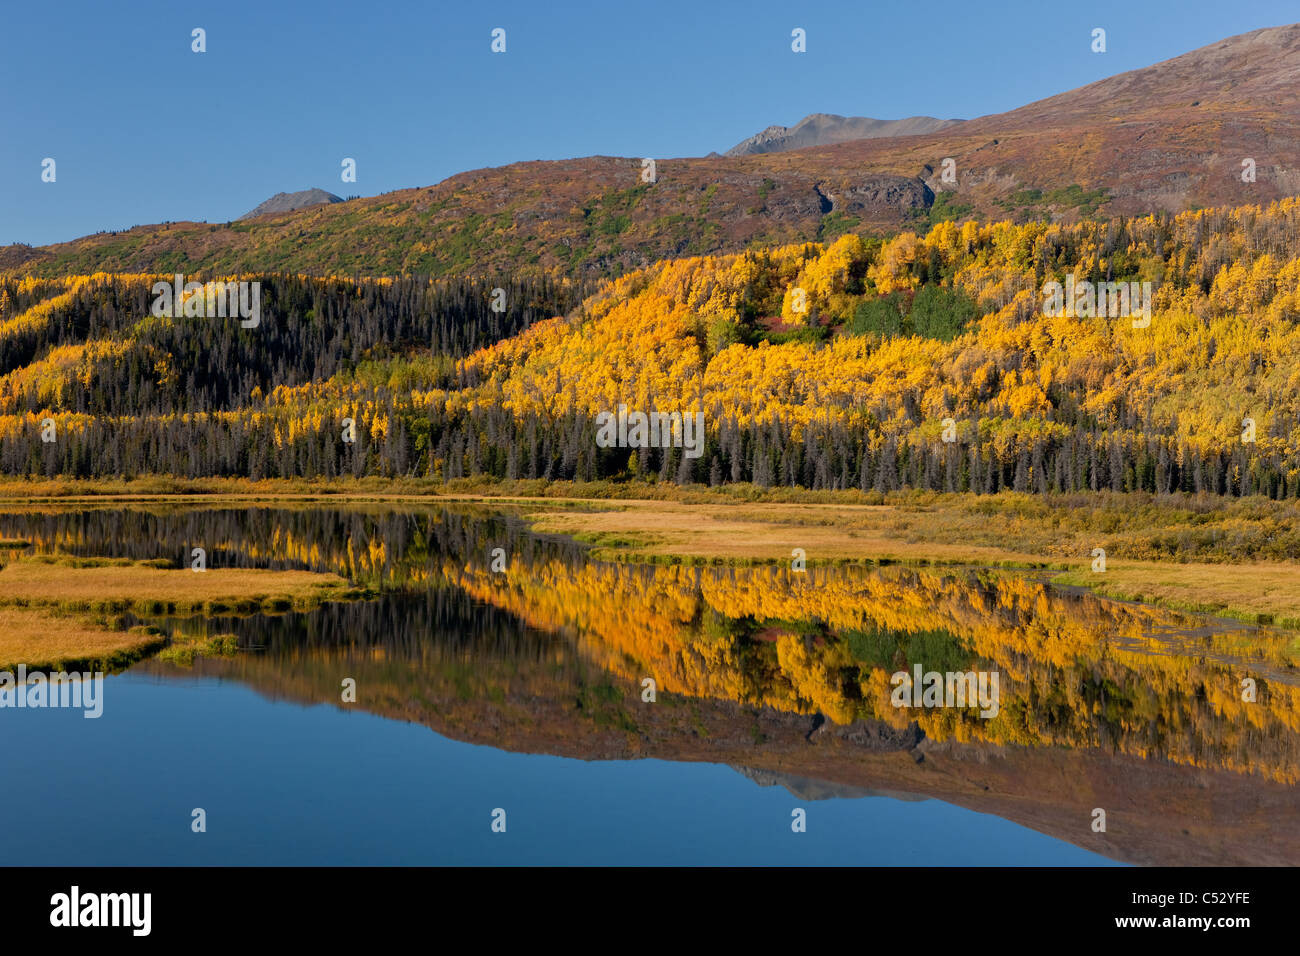 Scenic view of wetlands Autumn colors along the Alaska Highway between Haines and Haines Junction, Yukon Territory, - Stock Image